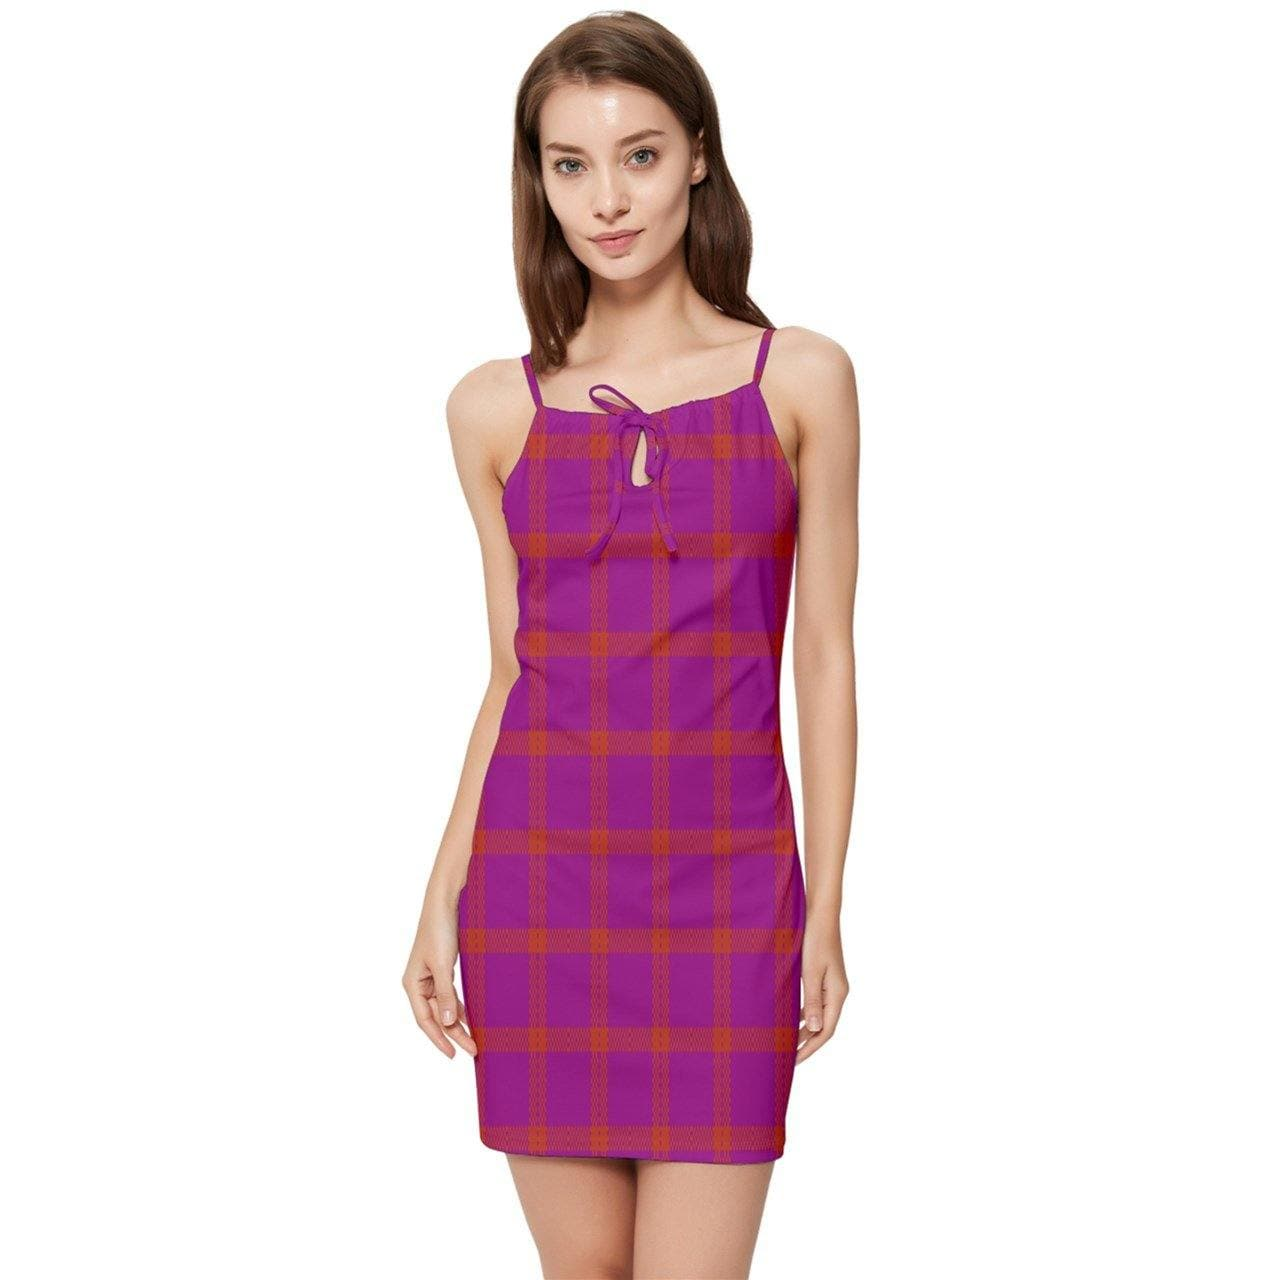 Perfusion Plaid Summer Tie Front Dress - Tie-Fly